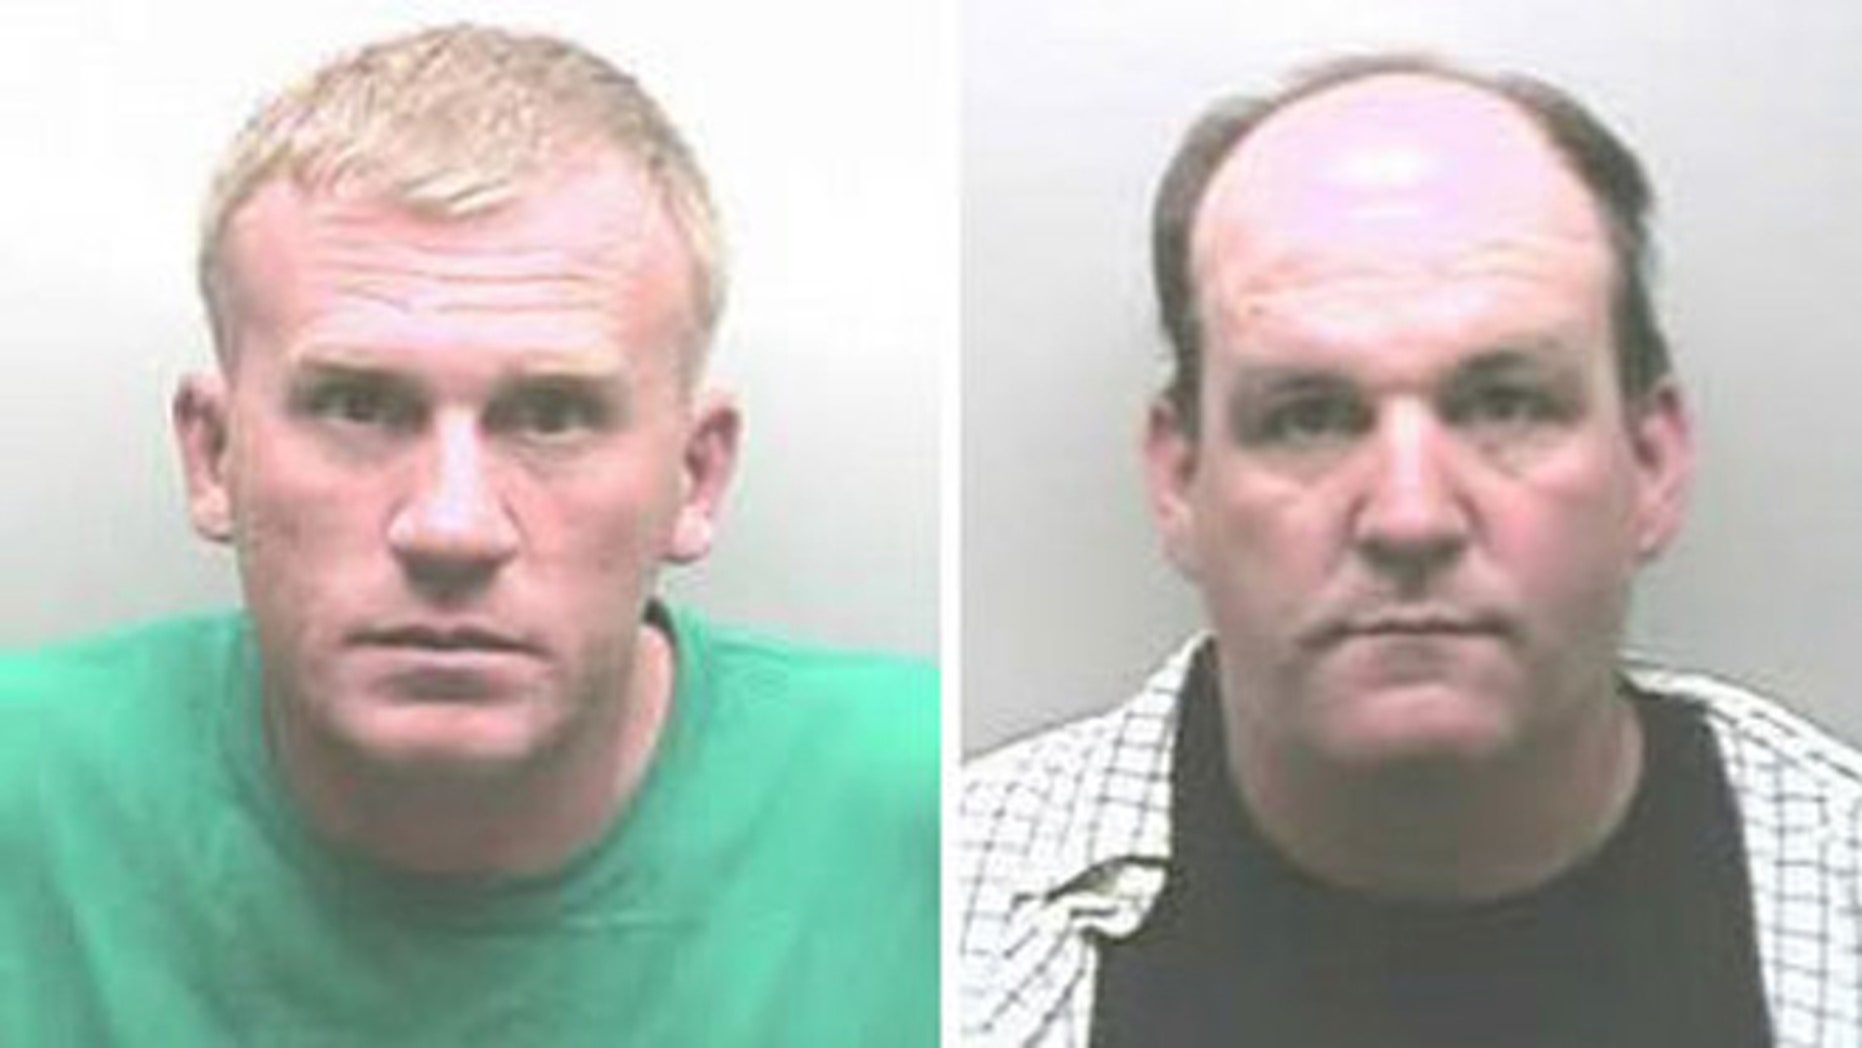 Gary Minor Jr., left, and Robert Gillaspie who aroused suspicions by winning six local tournaments in a row, also had their fishing and hunting licenses revoked and were banned from future fishing competitions. (Marshall County Sheriff's Office)